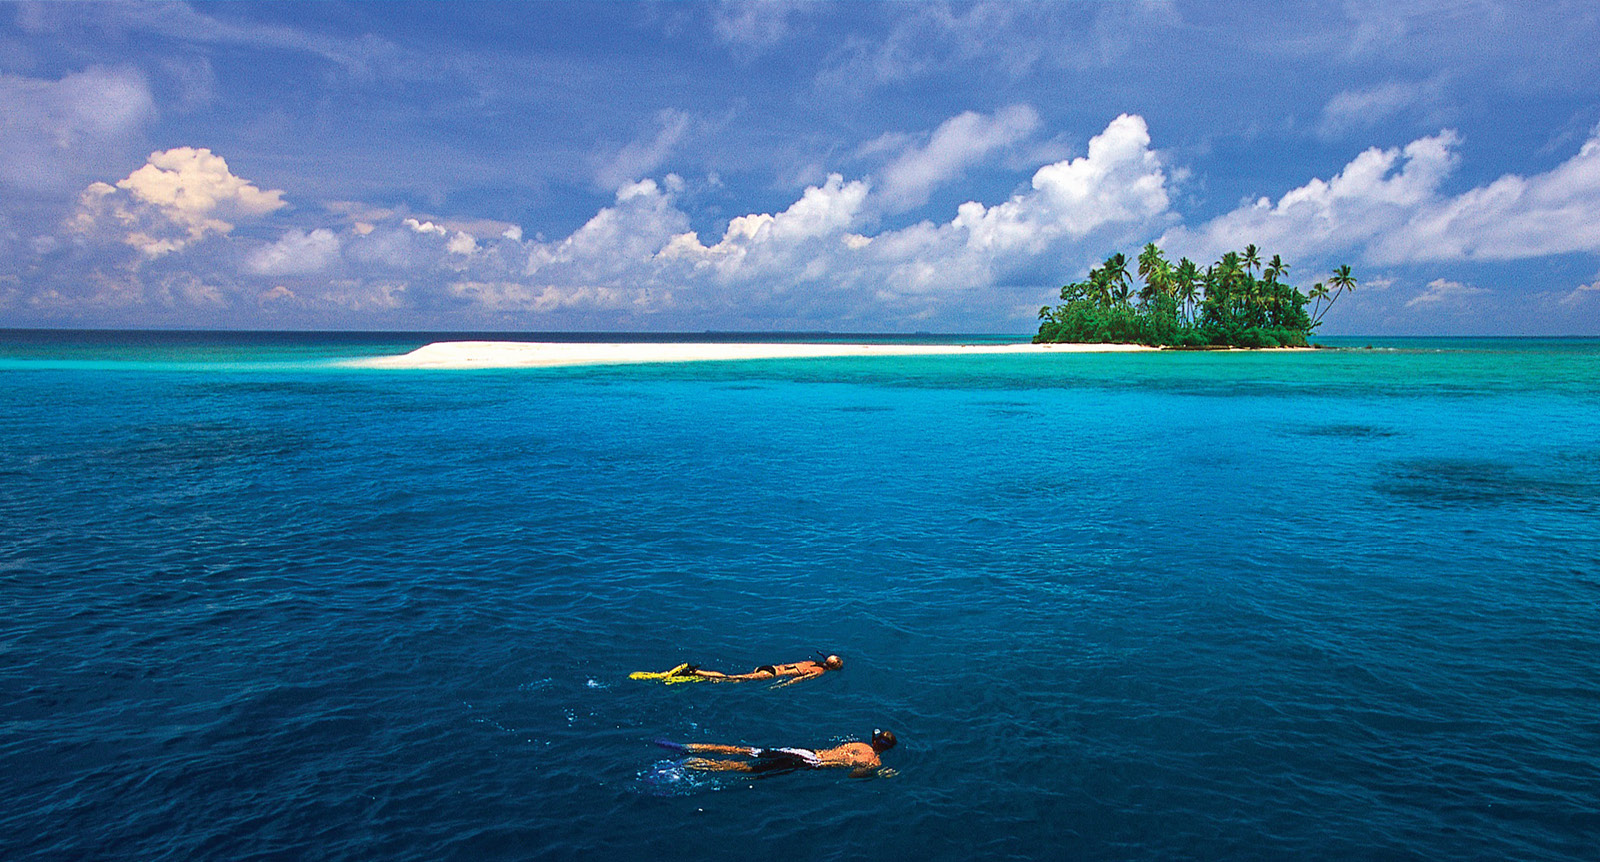 Snorkelling in New Ireland, off the coast of Papua New Guinea